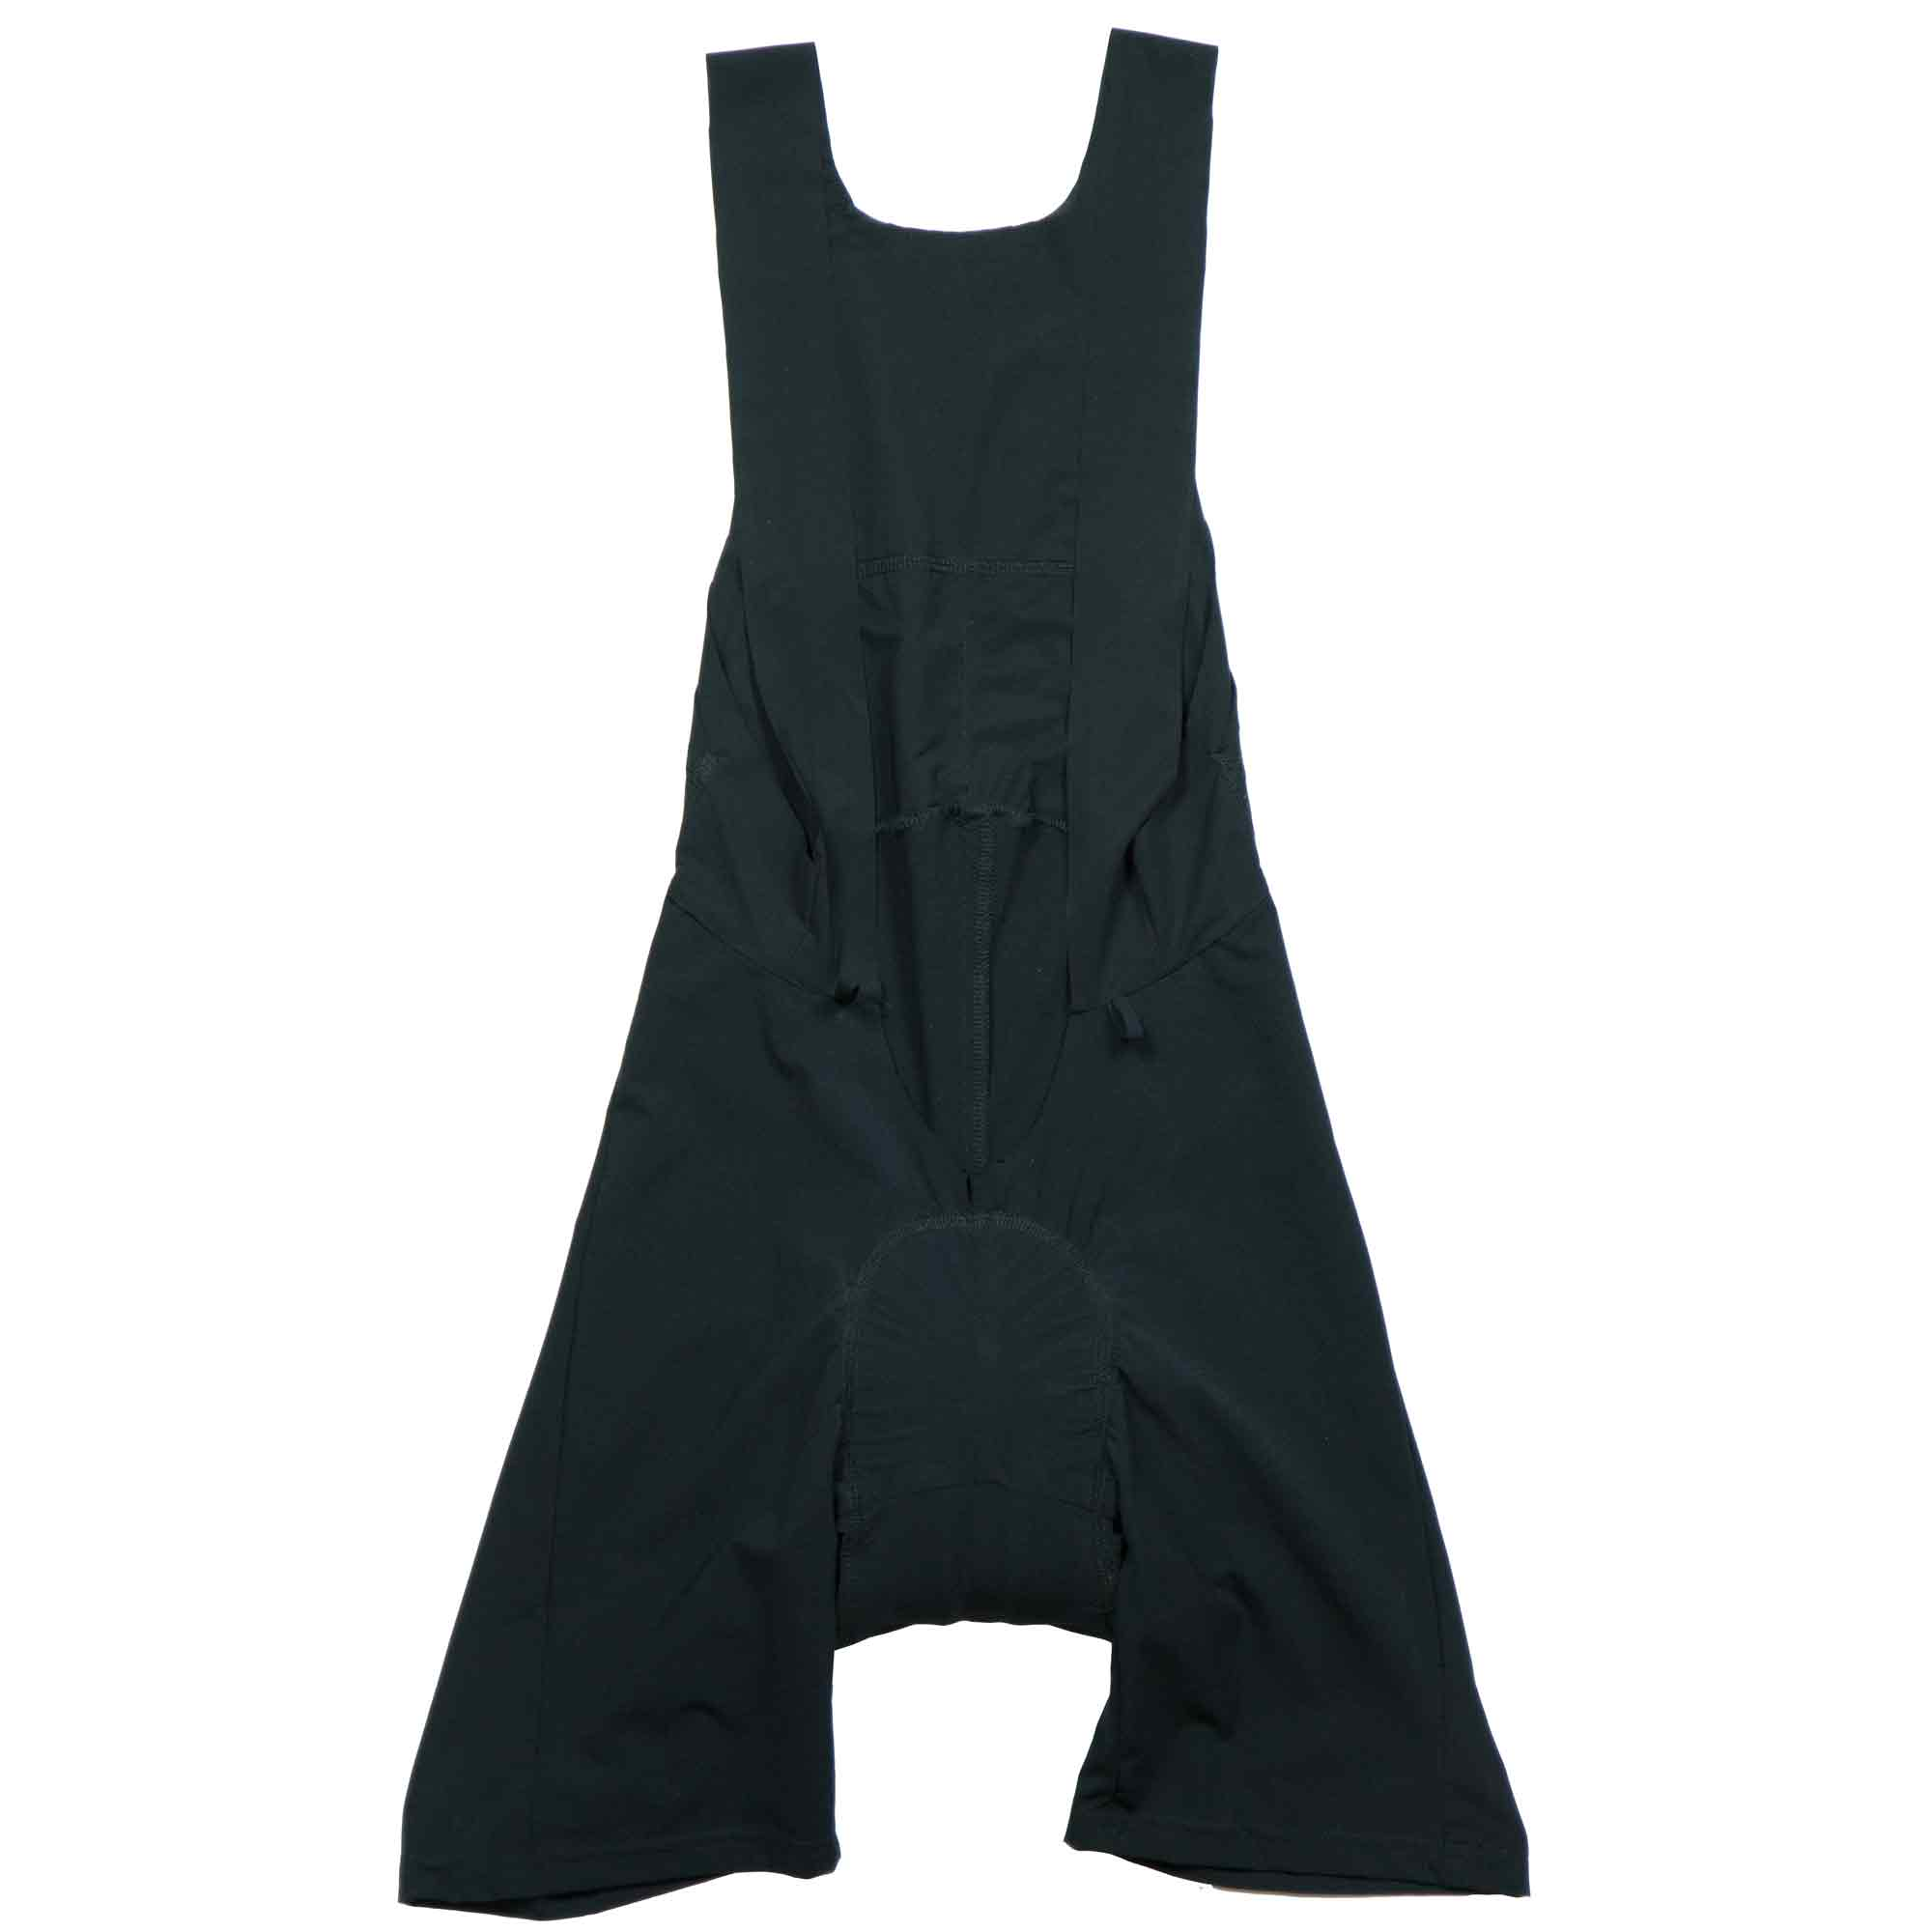 Synthetic off-road bib shorts